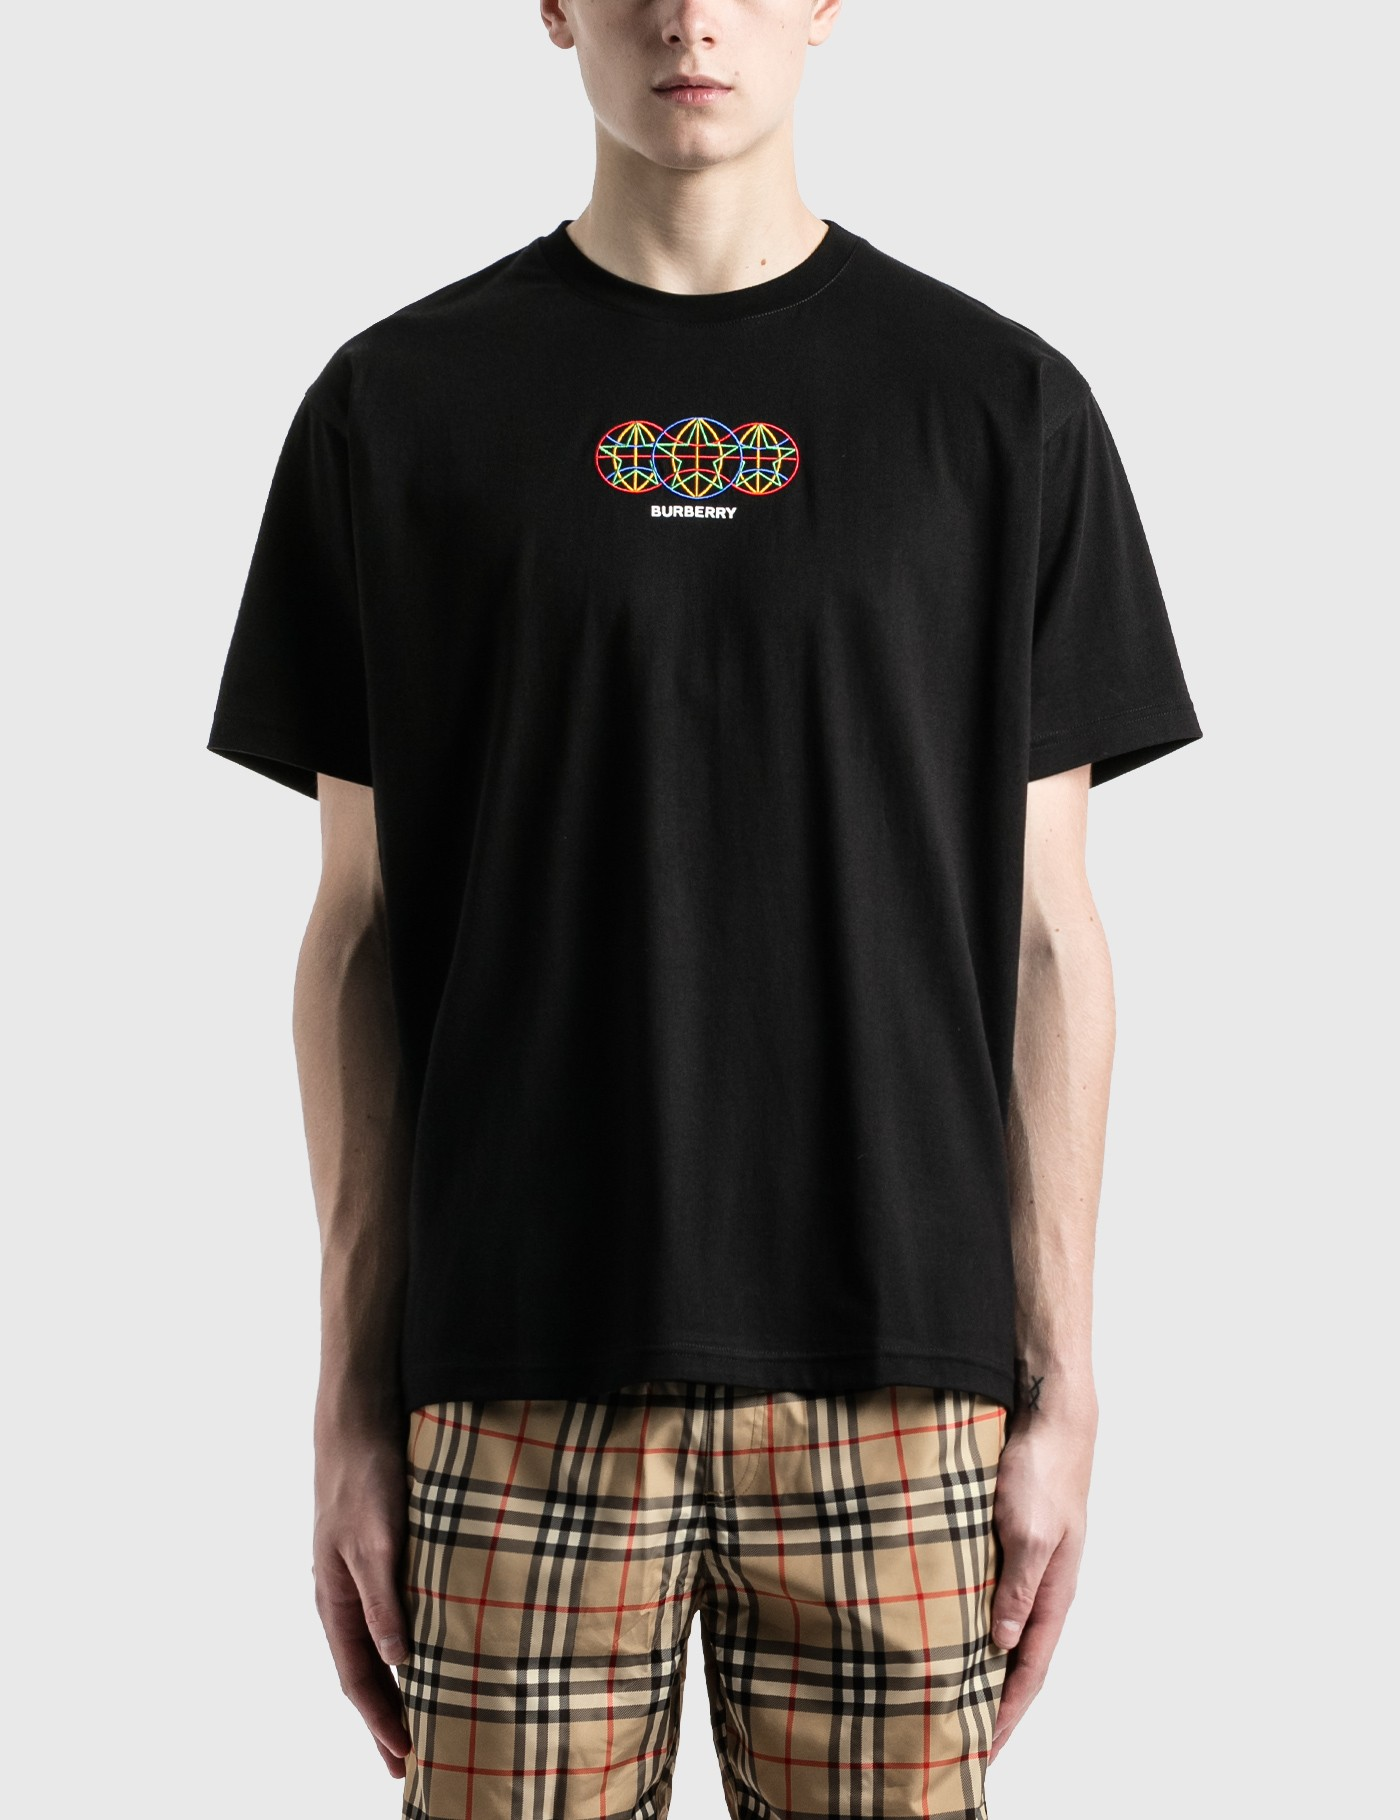 Burberry EMBROIDERED GLOBE GRAPHIC COTTON OVERSIZED T-SHIRT